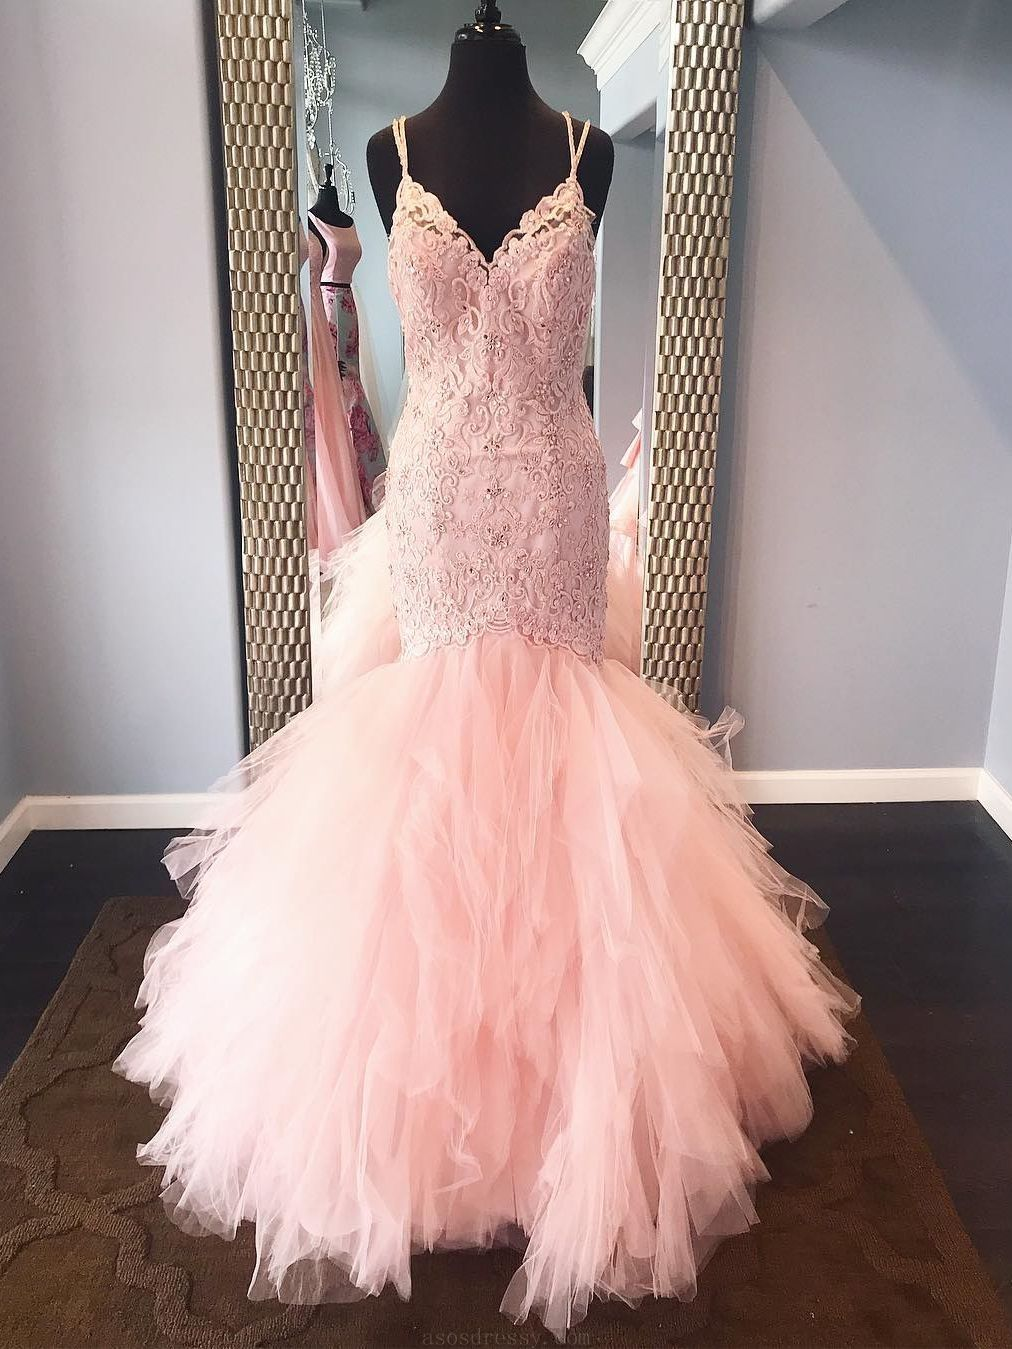 Comely lace prom dresses prom dresses pink mermaid prom dresses